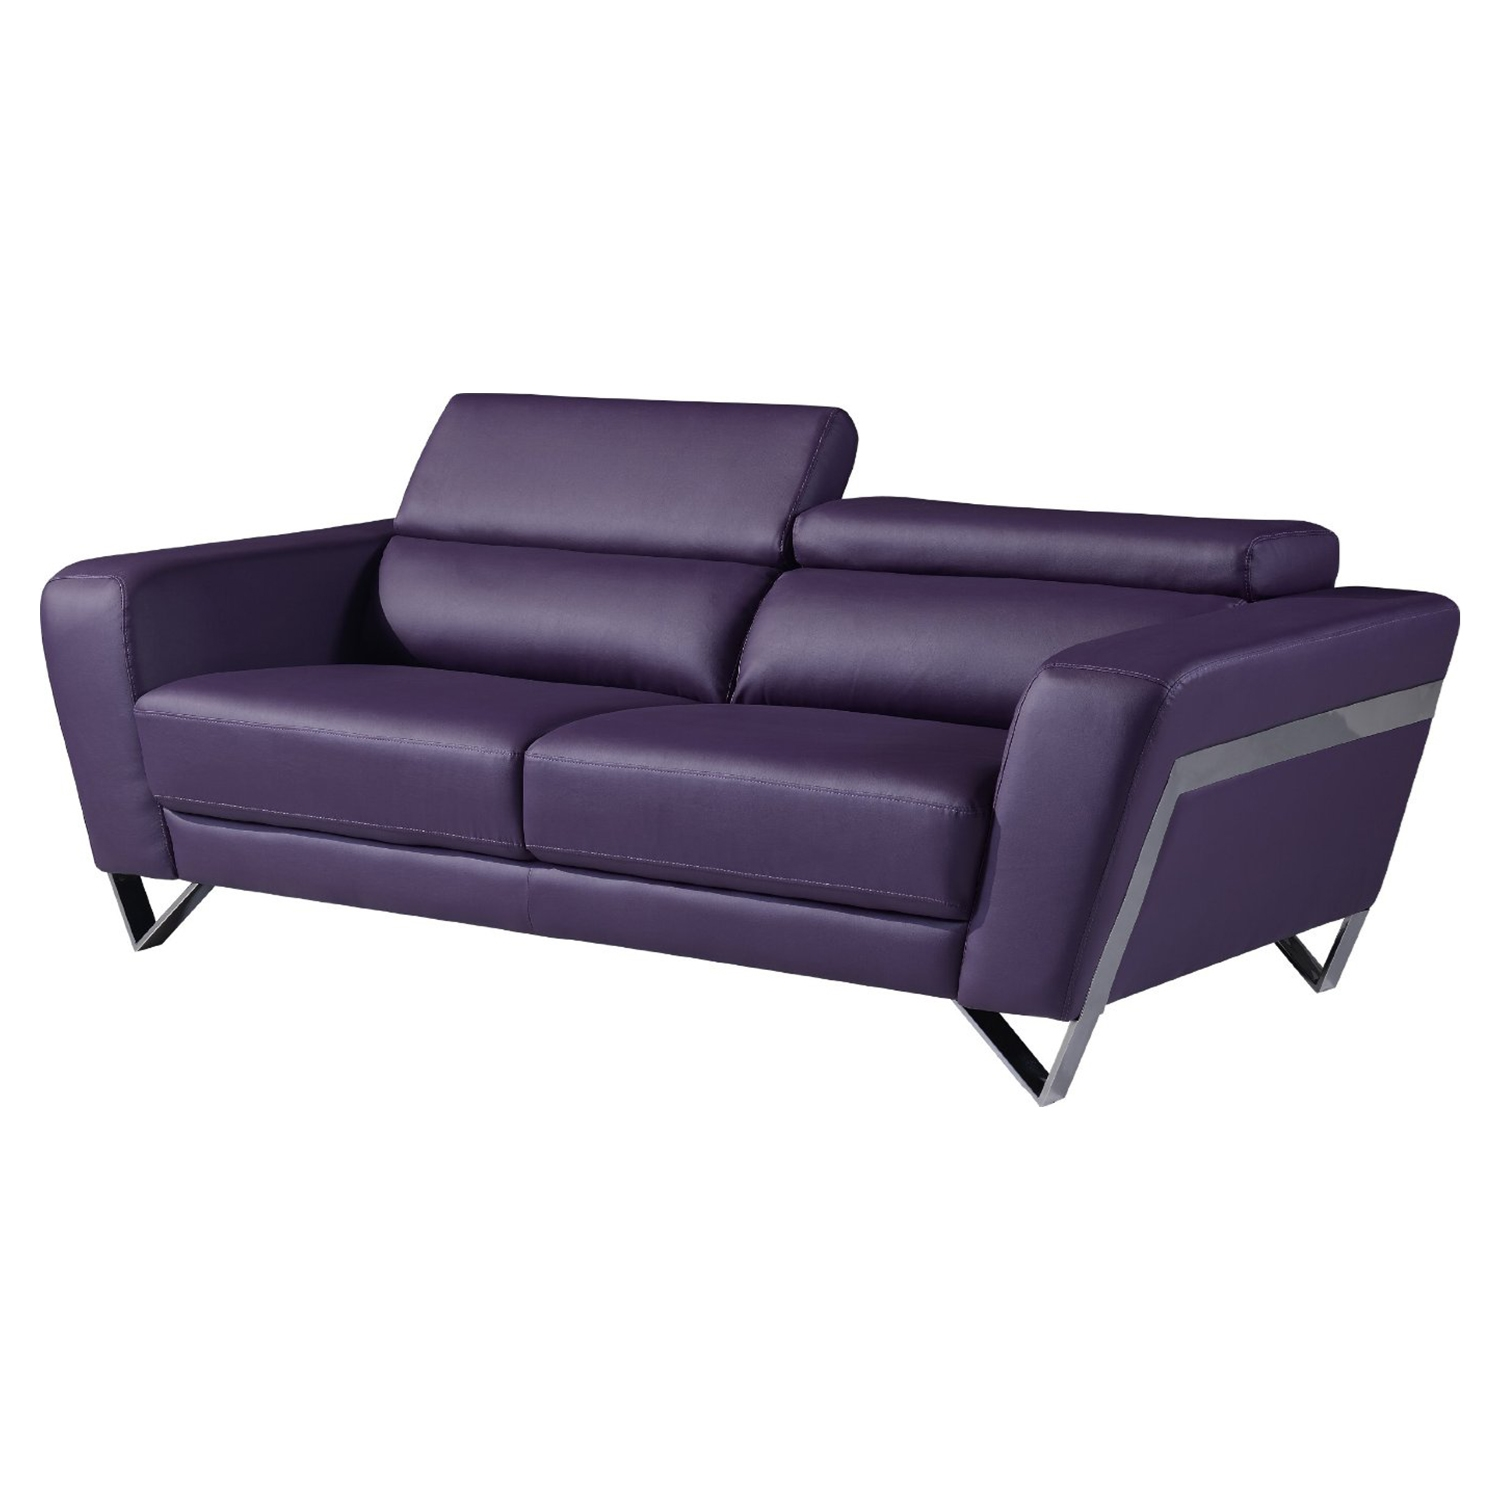 Braden Sofa with Headrest, Purple